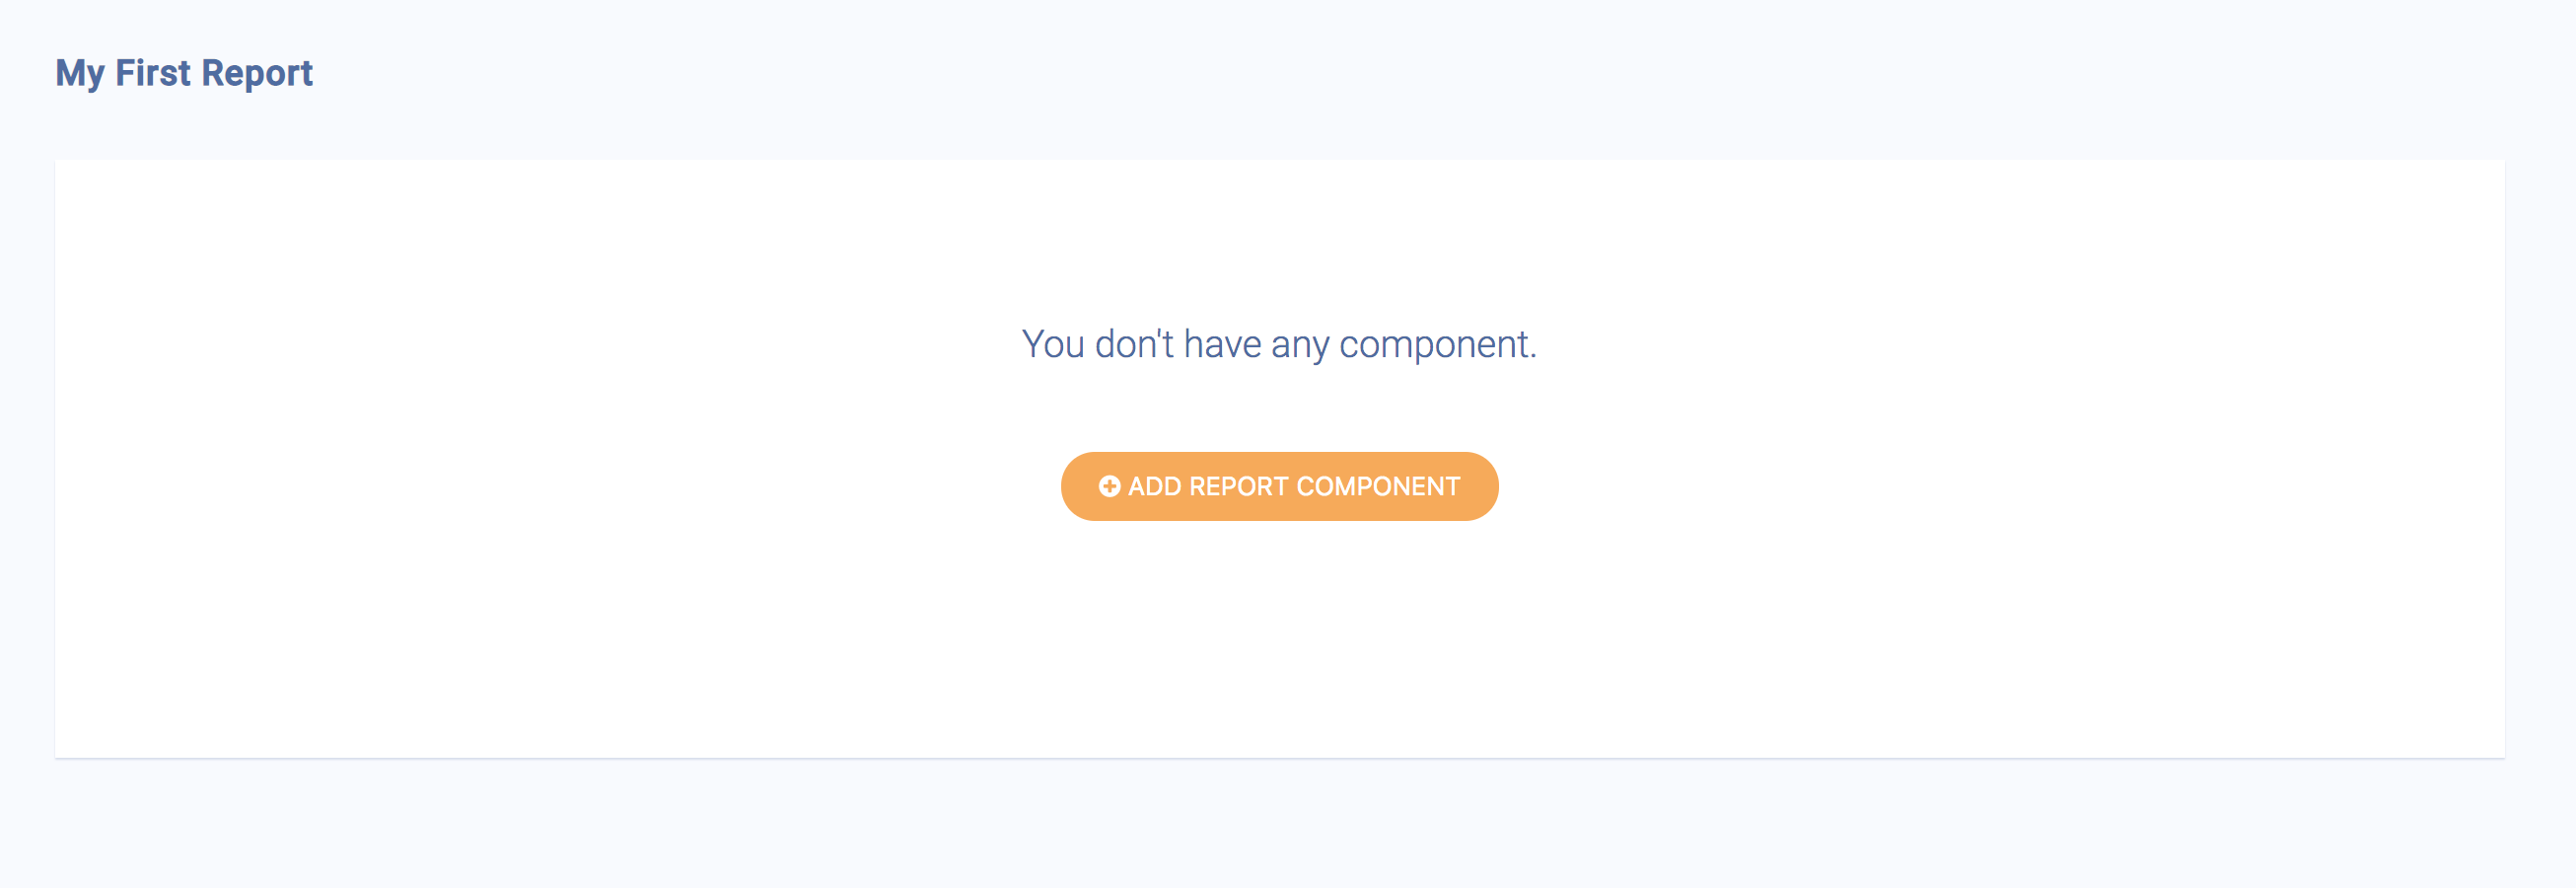 Add Report Components